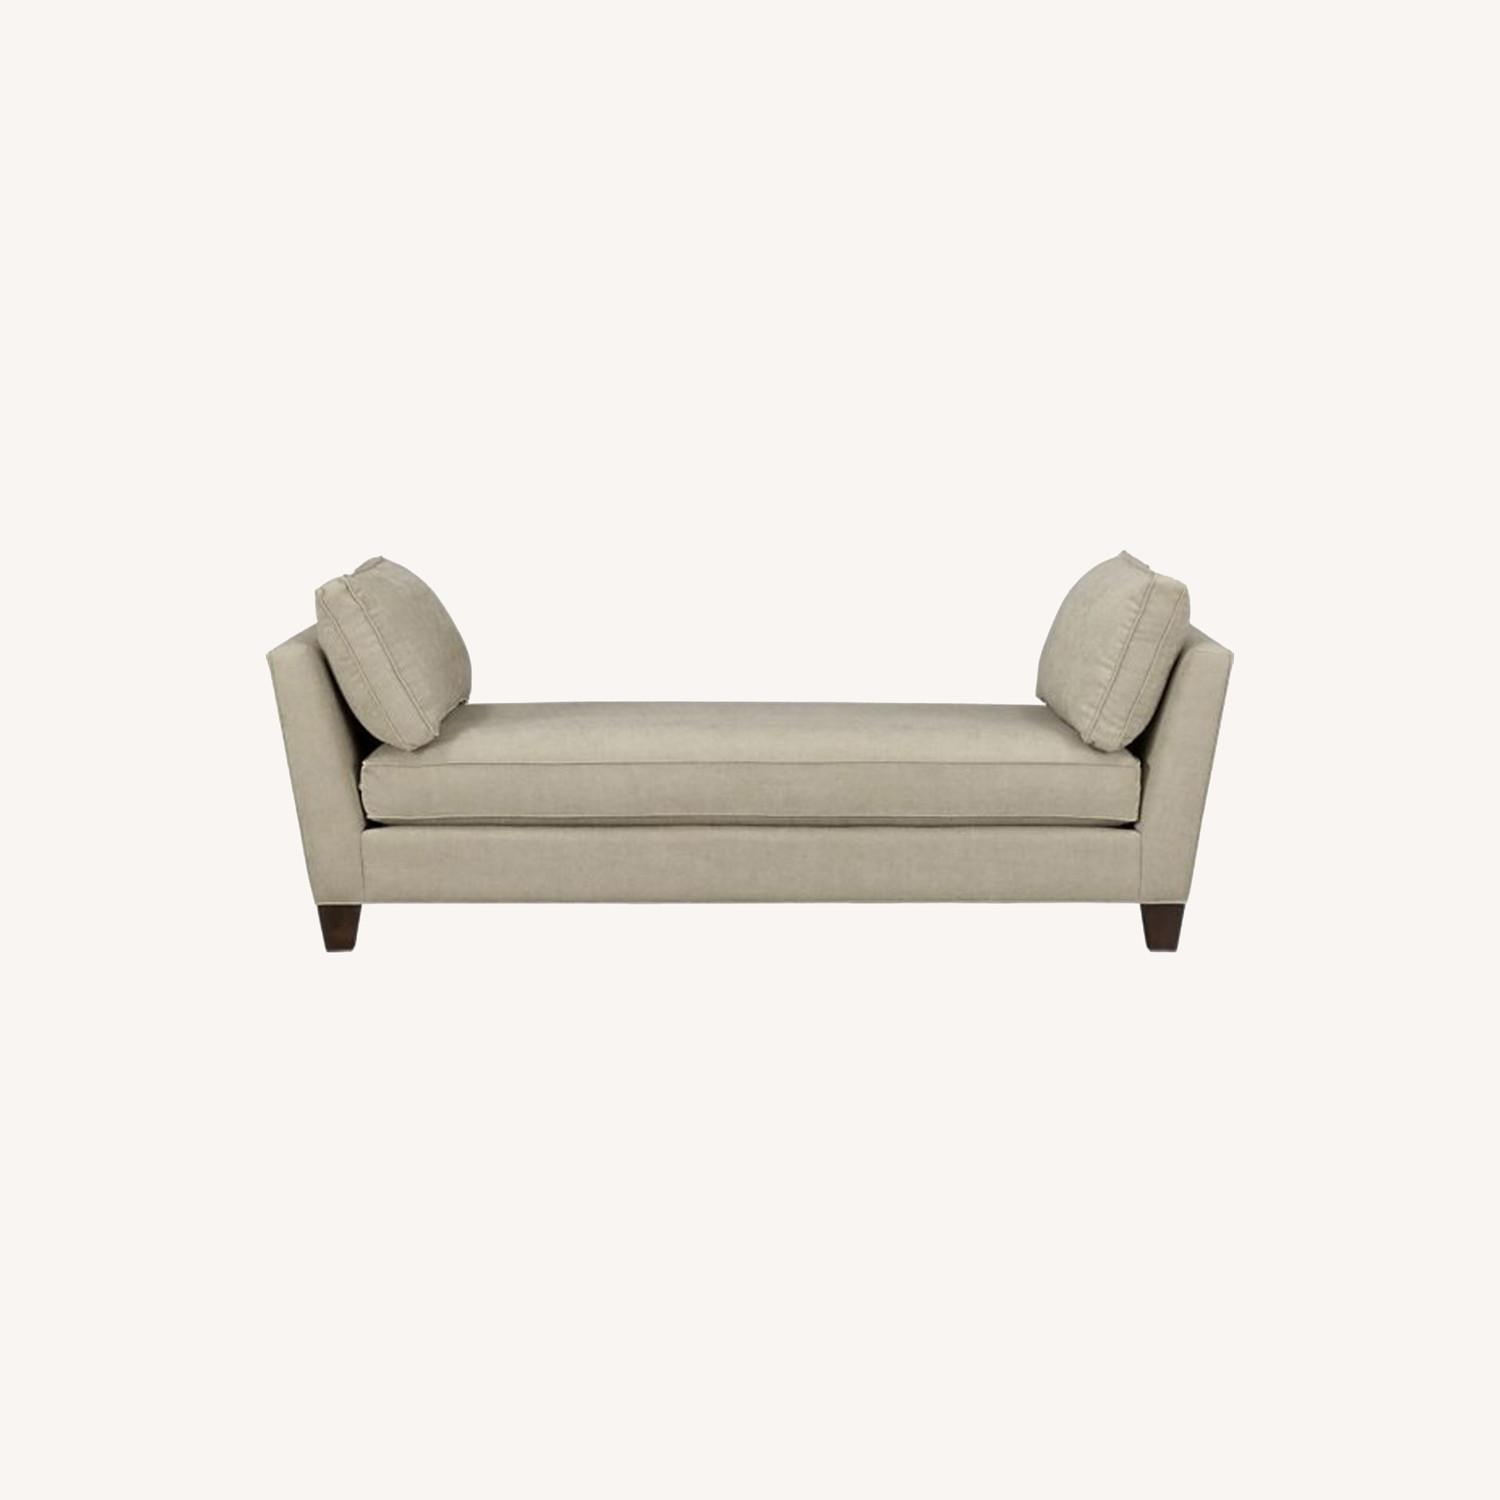 Crate & Barrel Simone Daybed - image-0